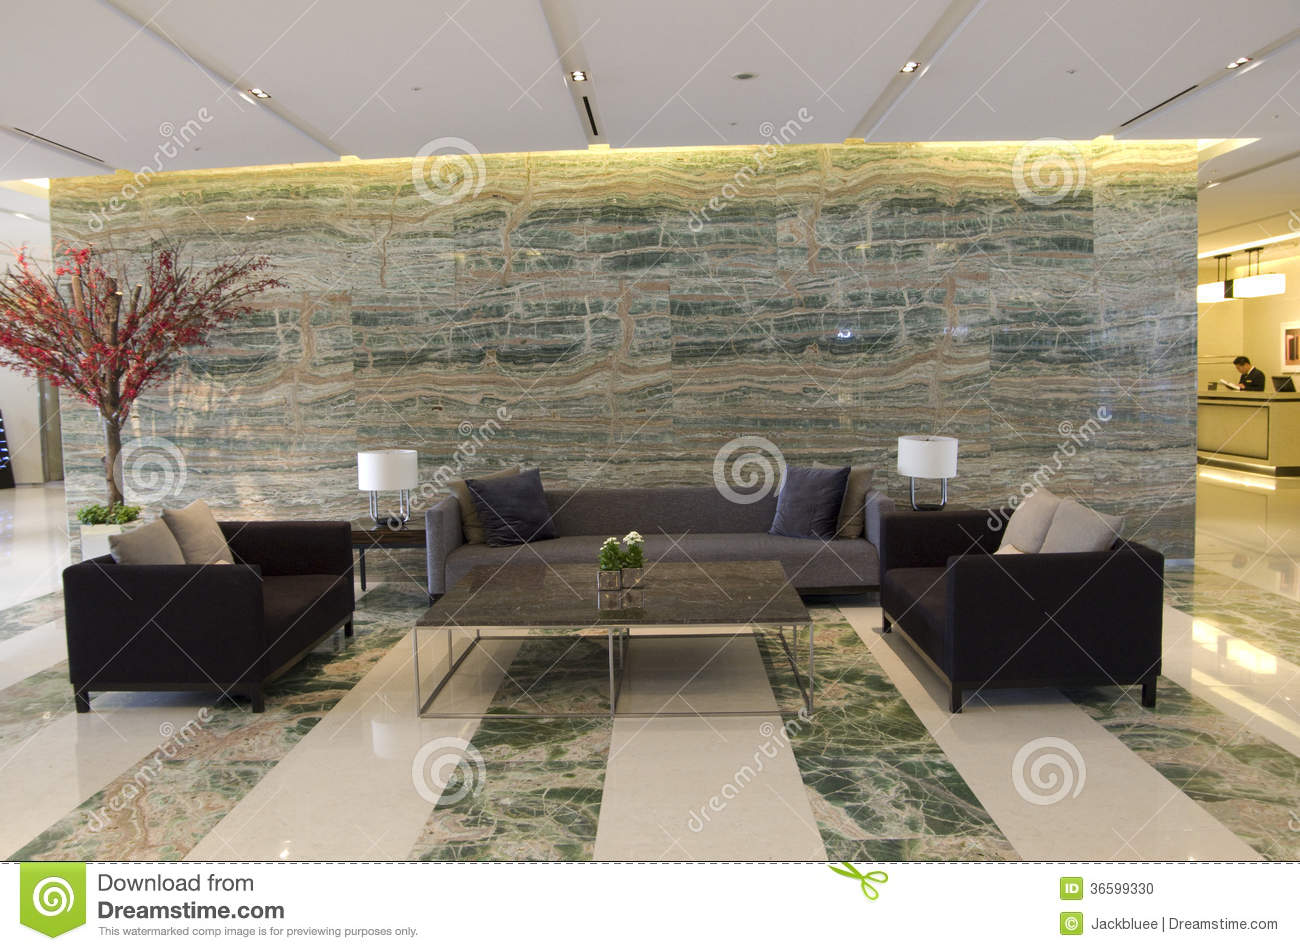 Luxury Hotel Lobby Front Desk Stock Photo - Image of desk ...